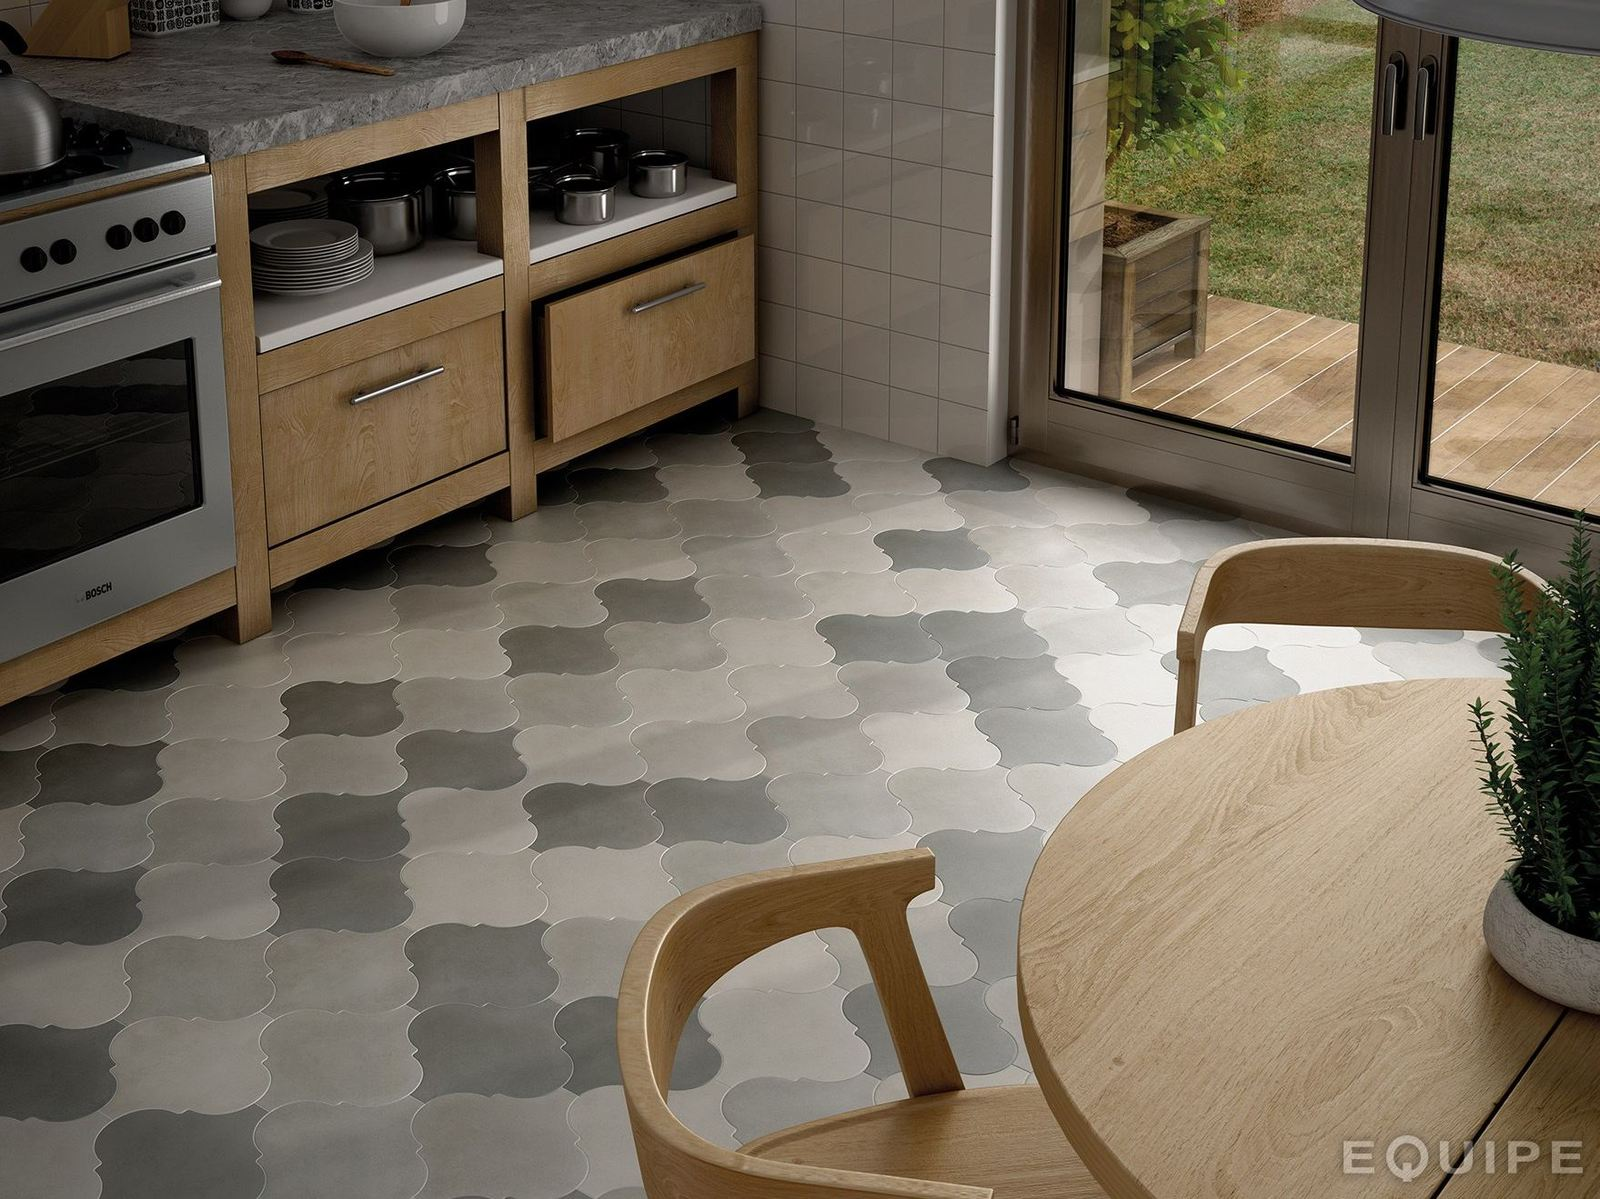 21 arabesque tile ideas for floor wall and backsplash kitchen tile flooring View in gallery arabesque tile floor kitchen grey 9